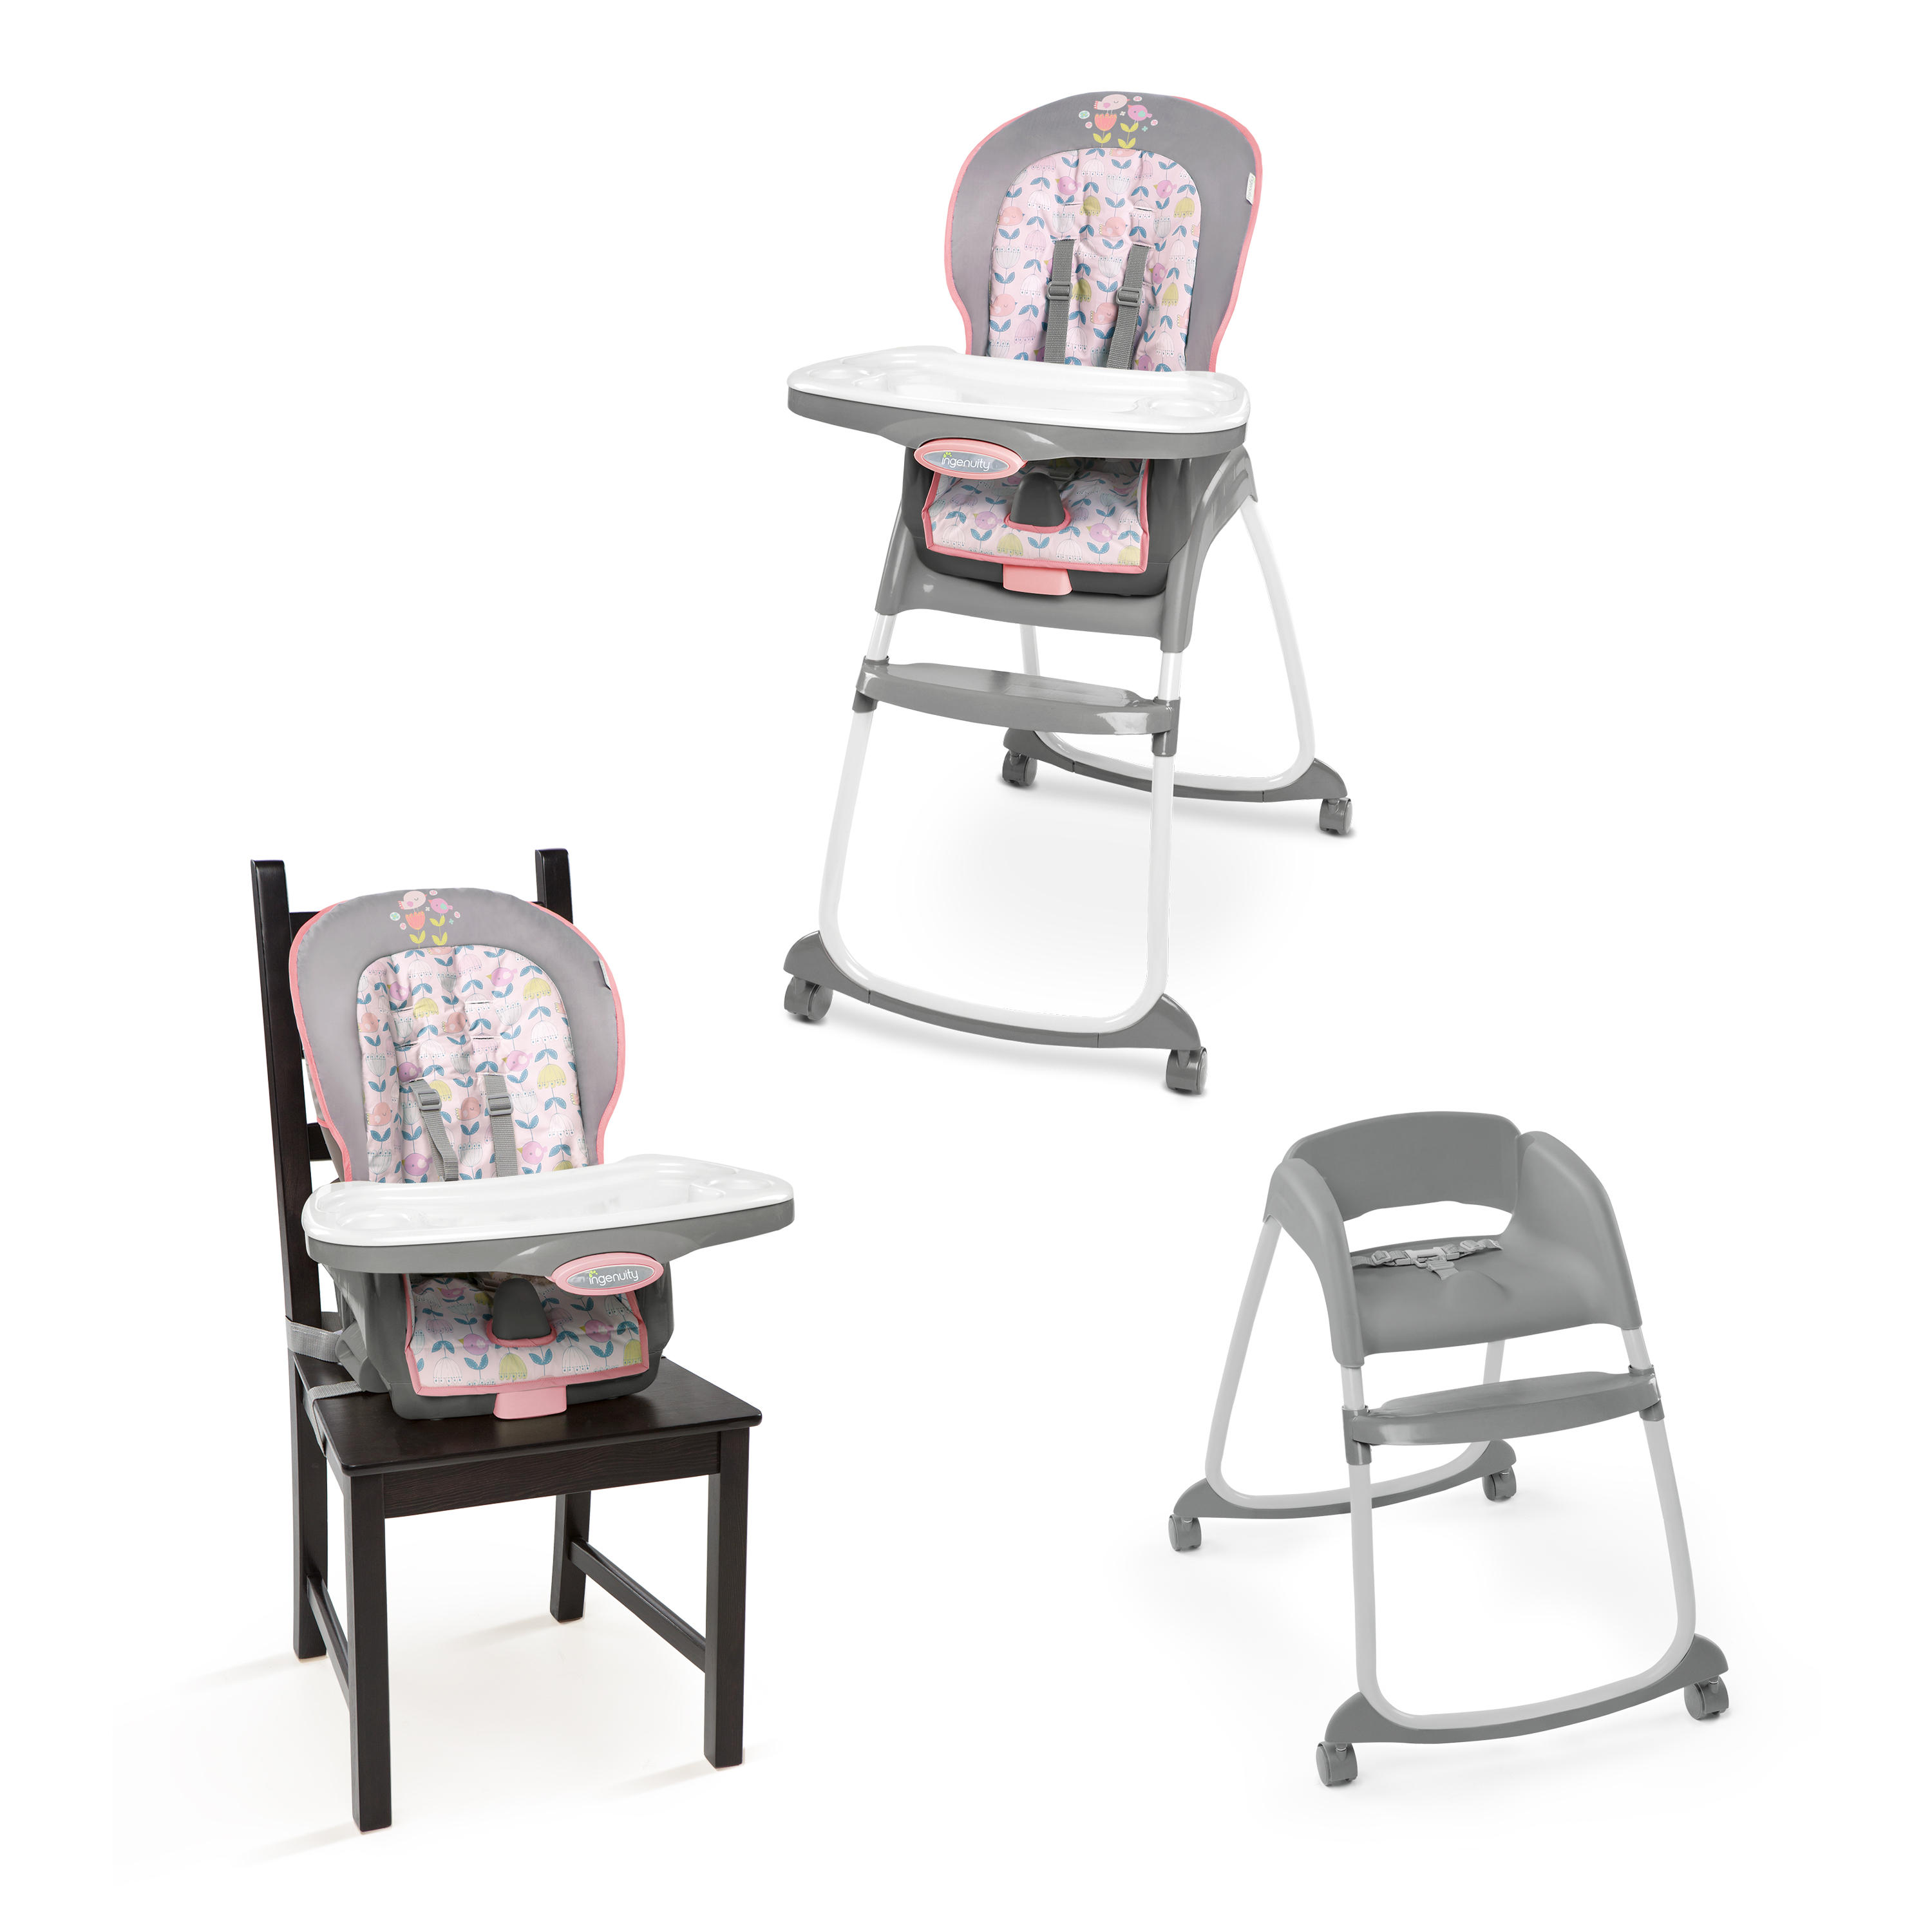 Ingenuity Trio 3-in-1 High Chair - Ansley